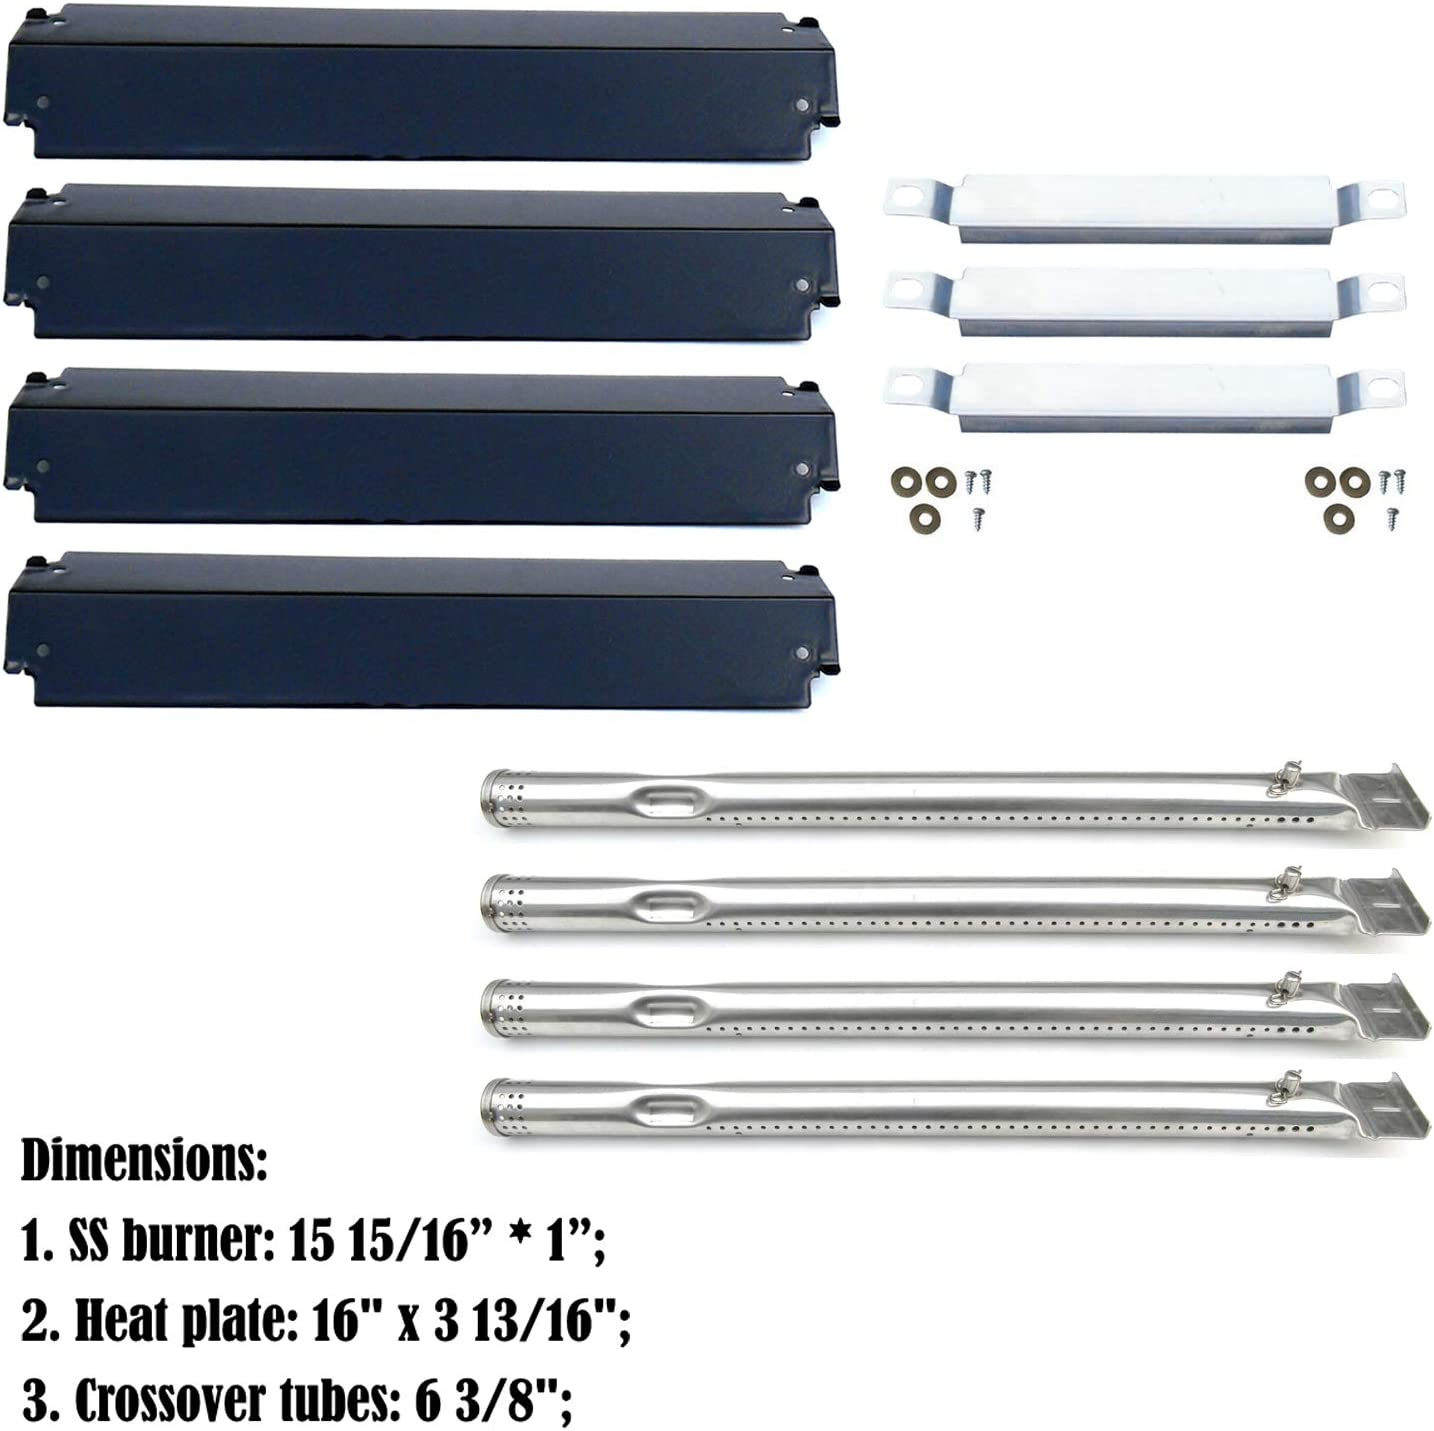 BBQ Gas Grill Burner Tube And Igniter Replacement Parts Kit For Brinkmann 5 Pack